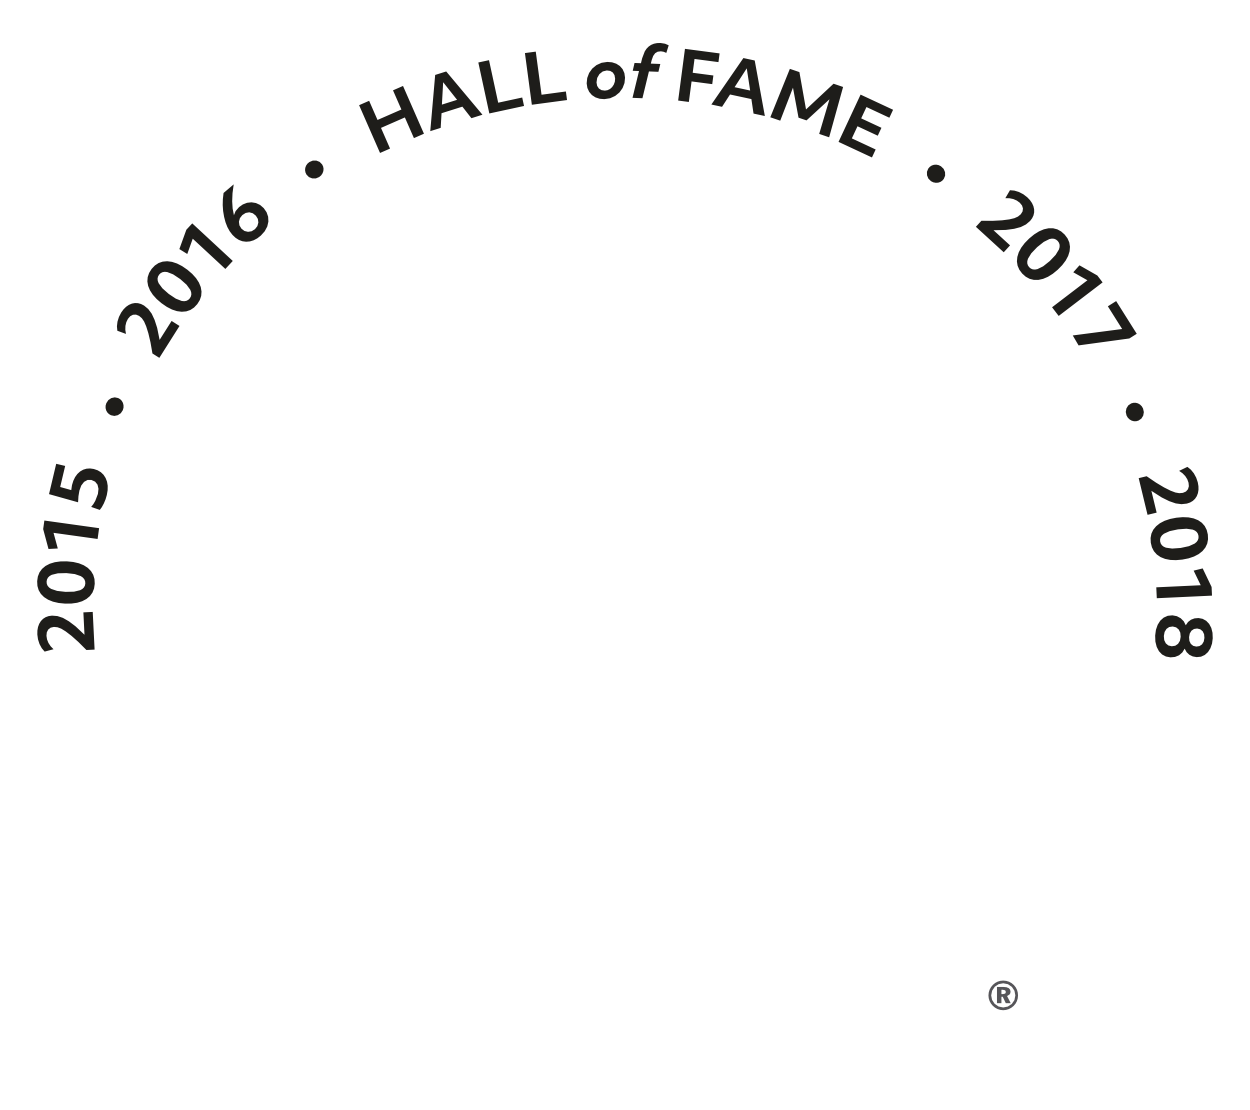 2019 TripAdvisor Certificate of Excellence- Hall of Fame